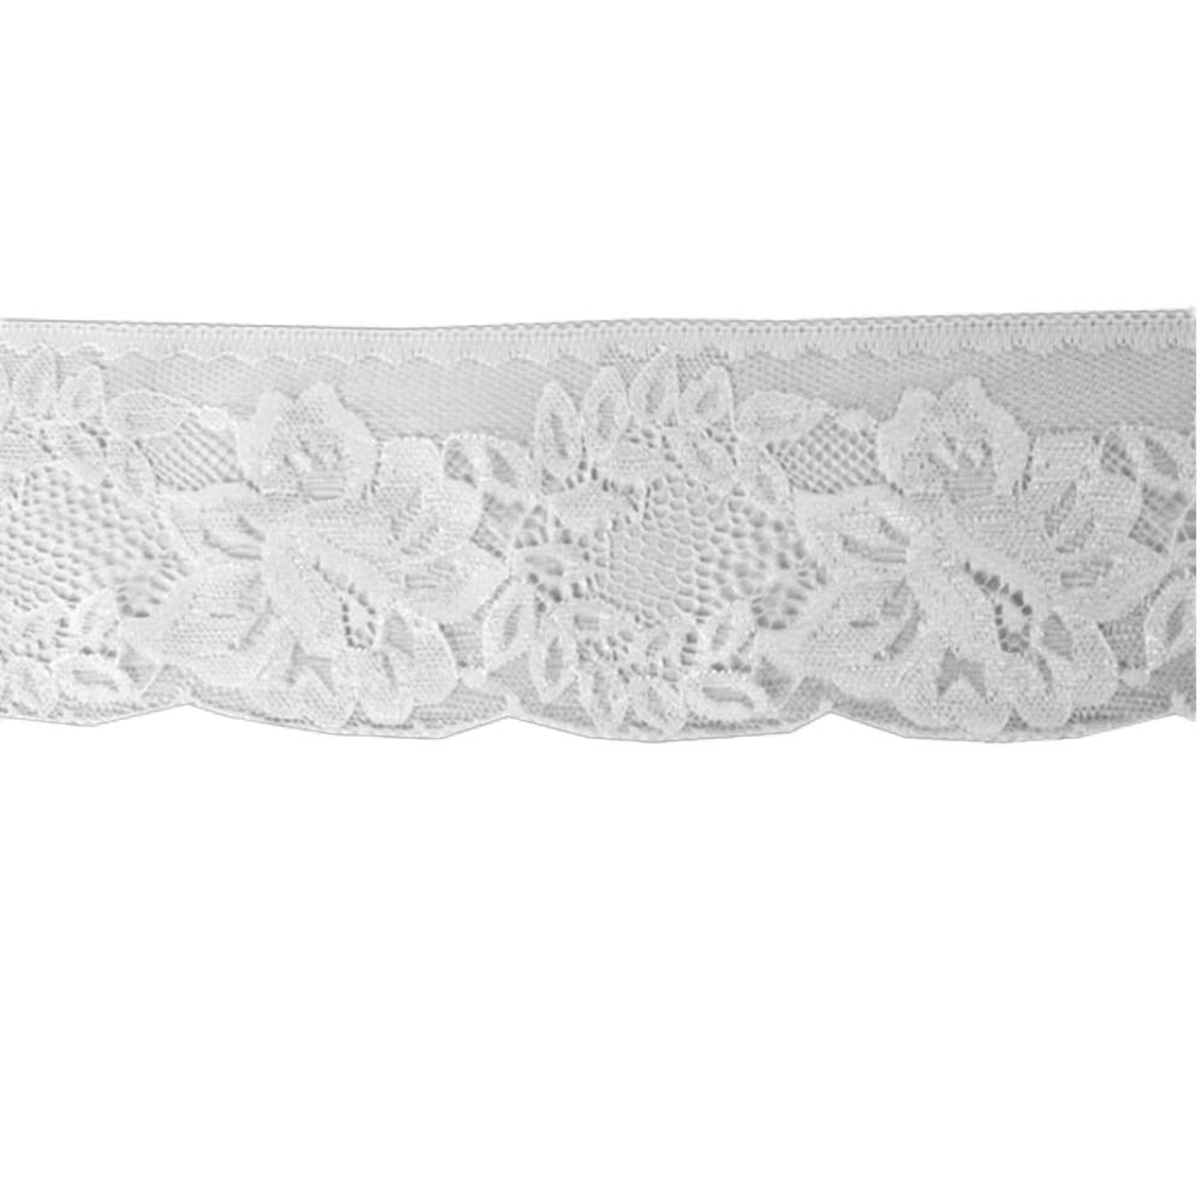 Embroidered lace, white 001